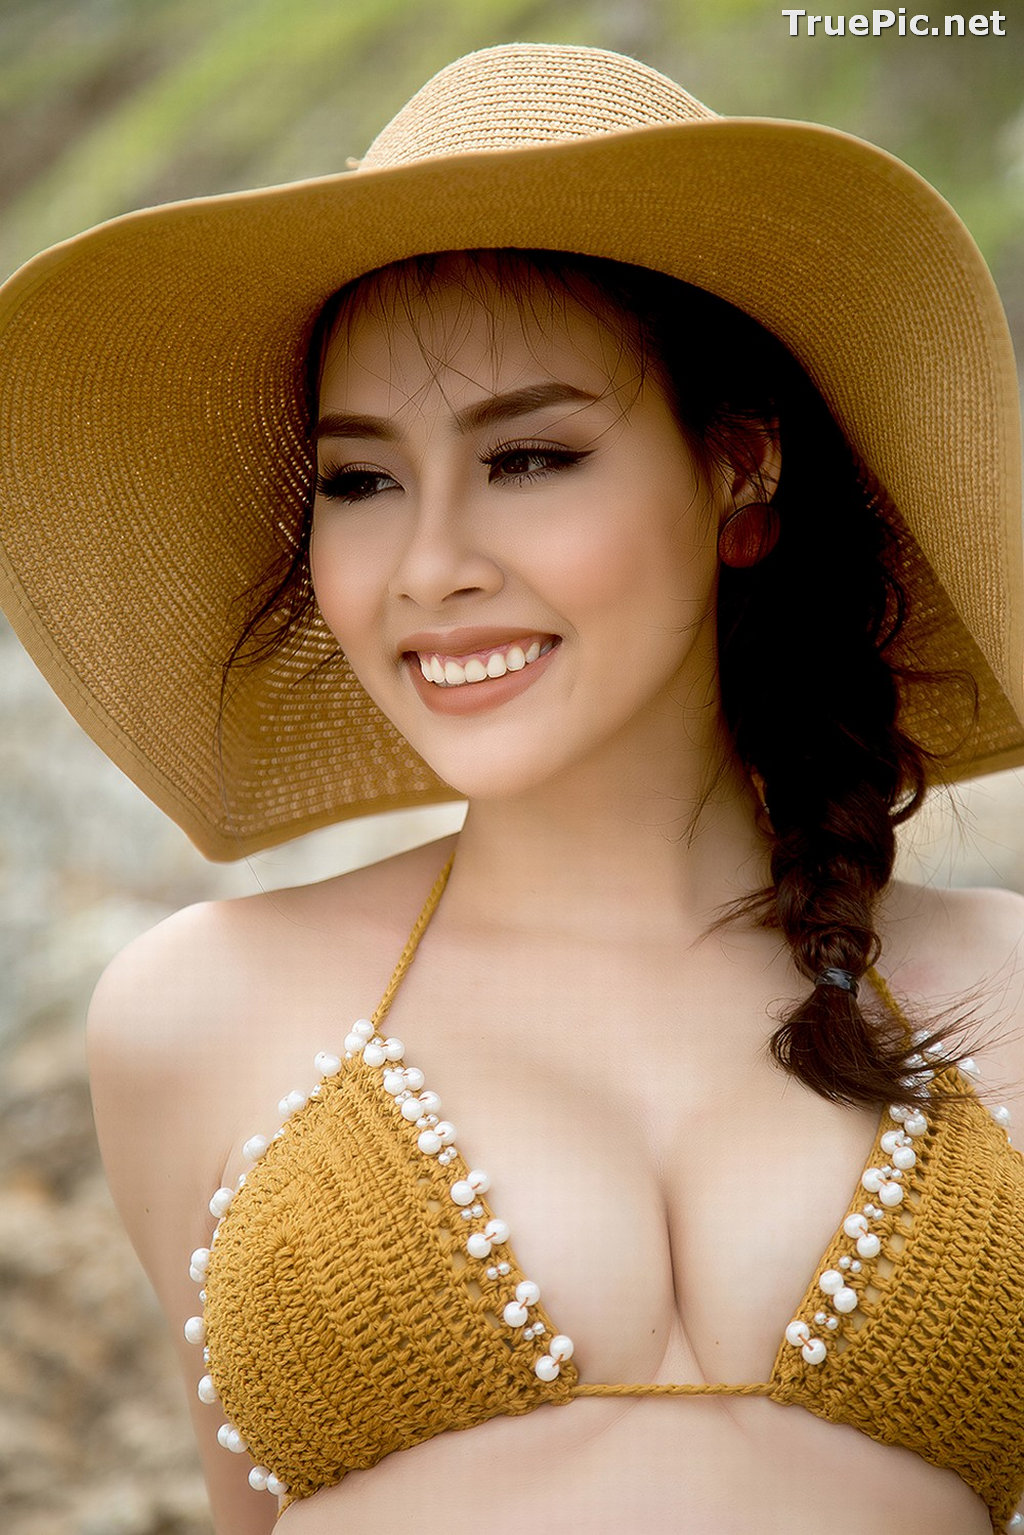 Image Vietnamese Hot Model - Thuy Trang - Wool Bikini Collection - TruePic.net - Picture-5